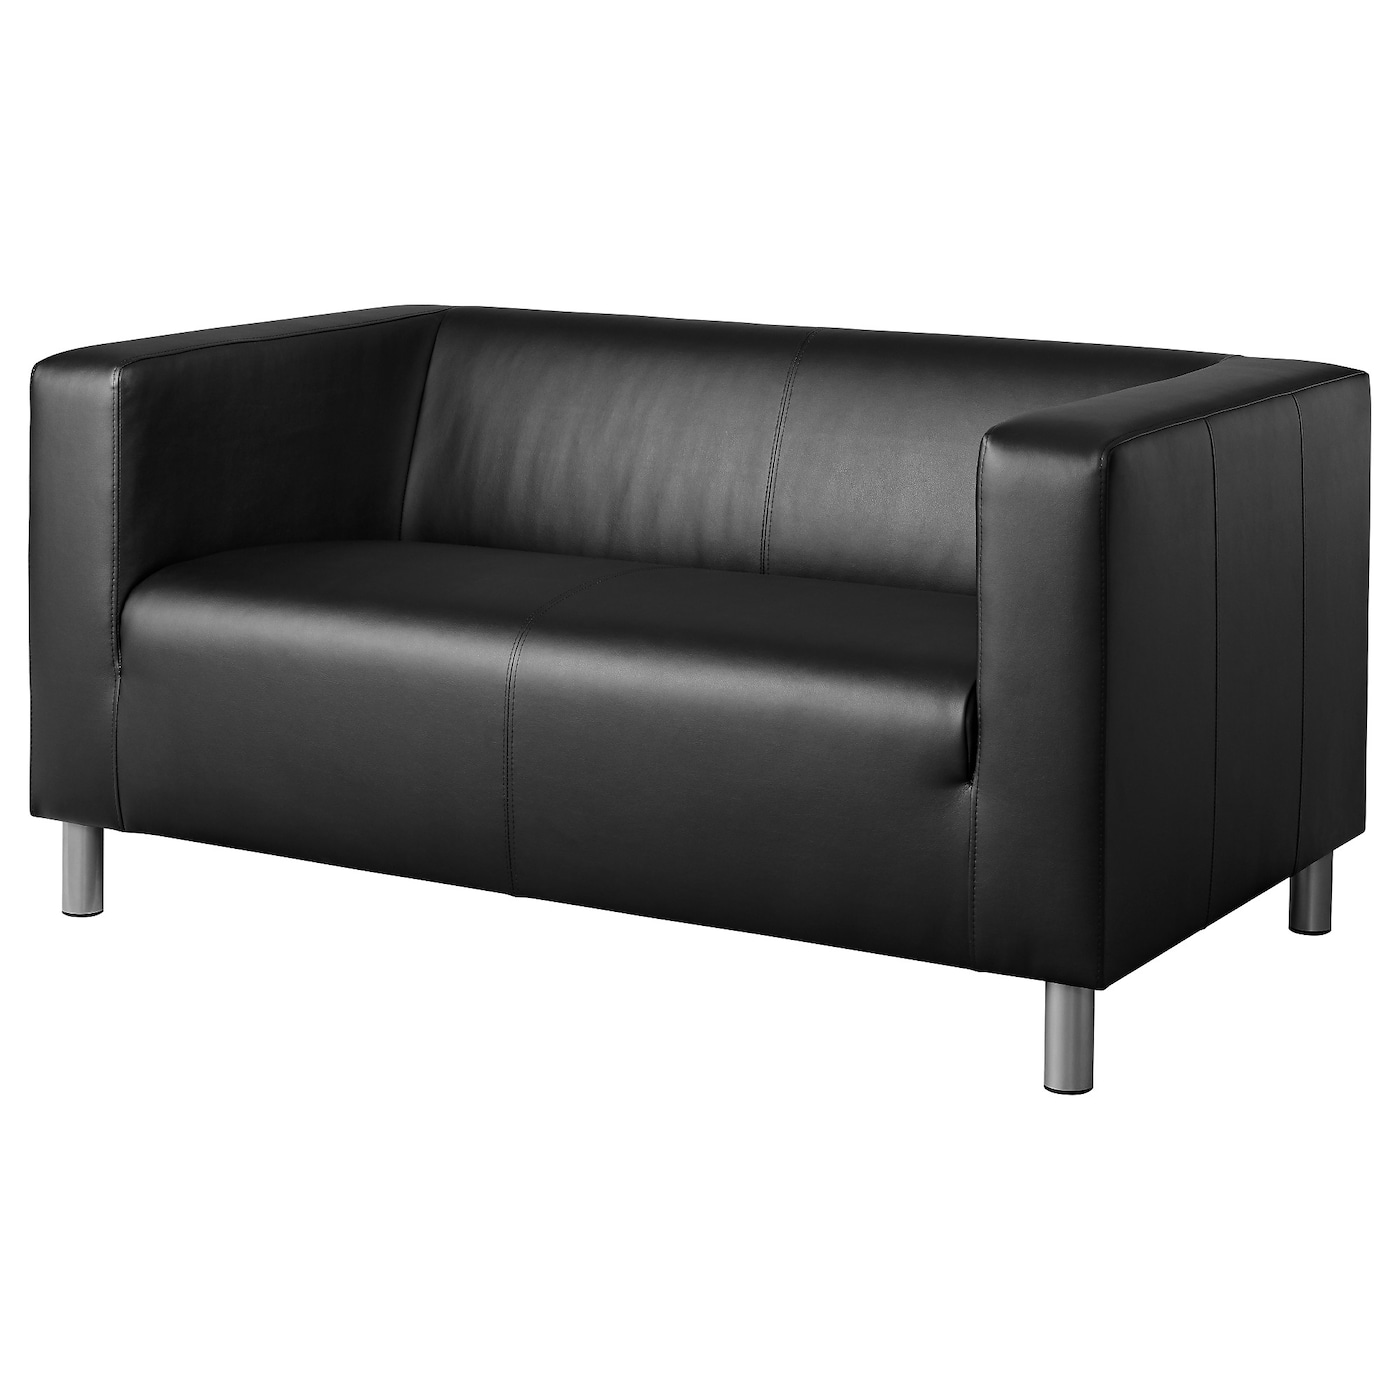 leather coated fabric sofas ikea. Black Bedroom Furniture Sets. Home Design Ideas